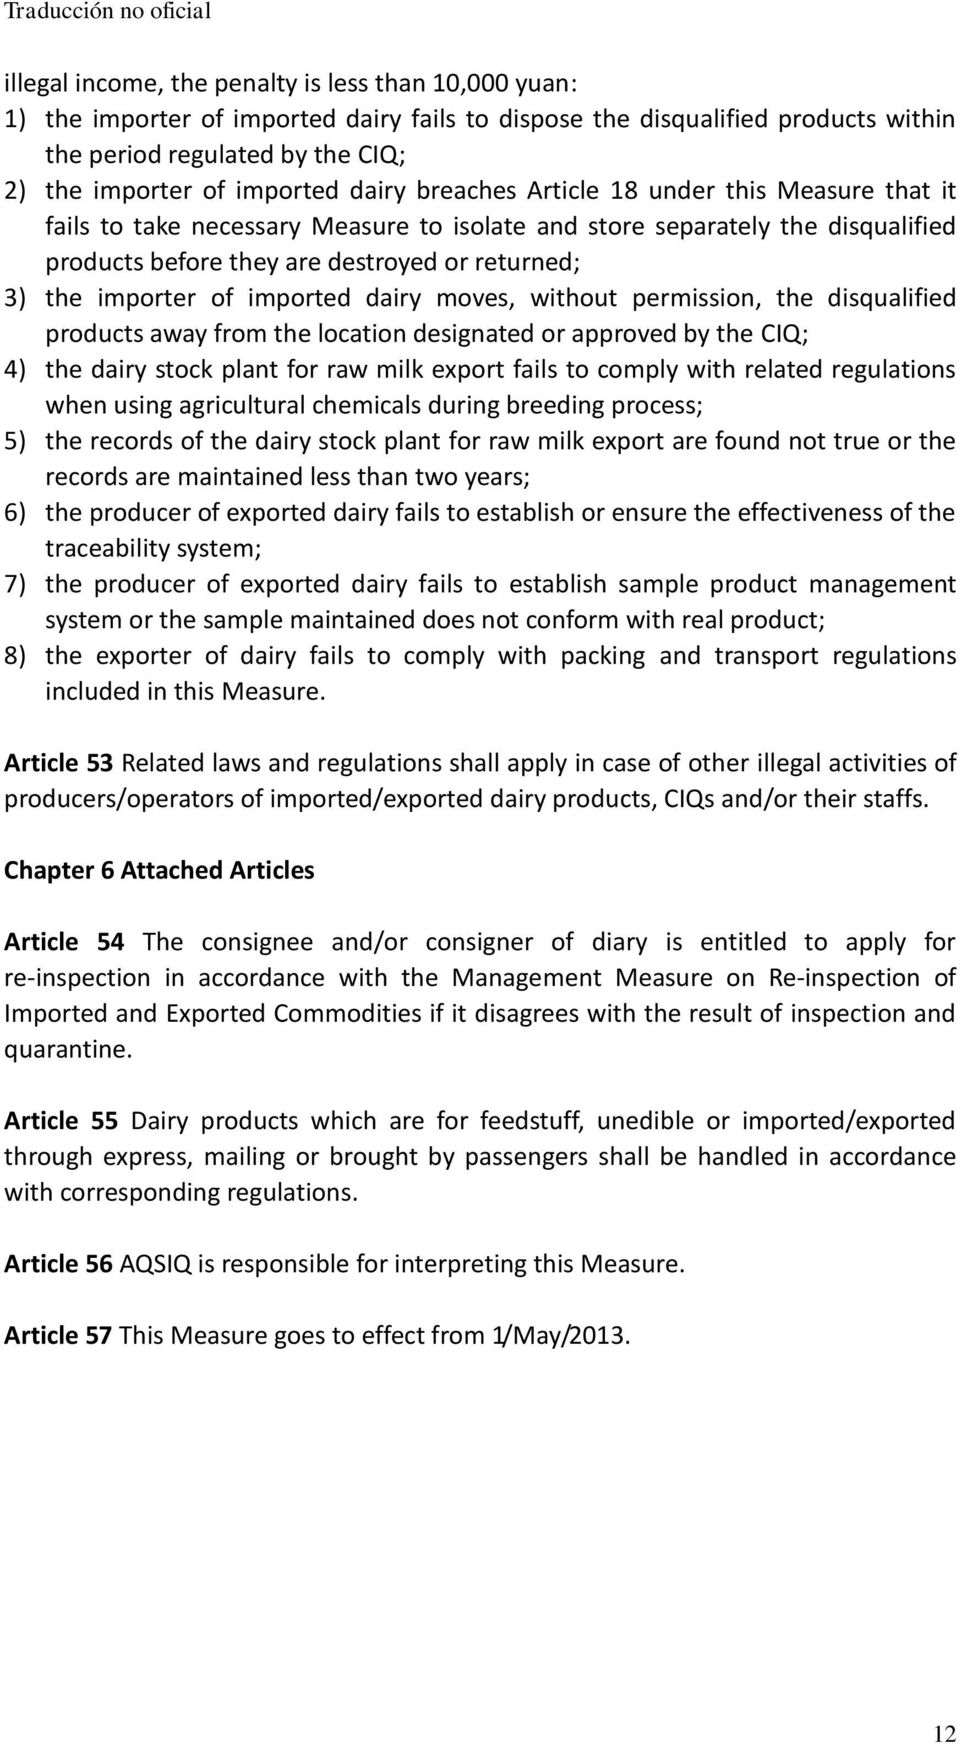 of imported dairy moves, without permission, the disqualified products away from the location designated or approved by the CIQ; 4) the dairy stock plant for raw milk export fails to comply with